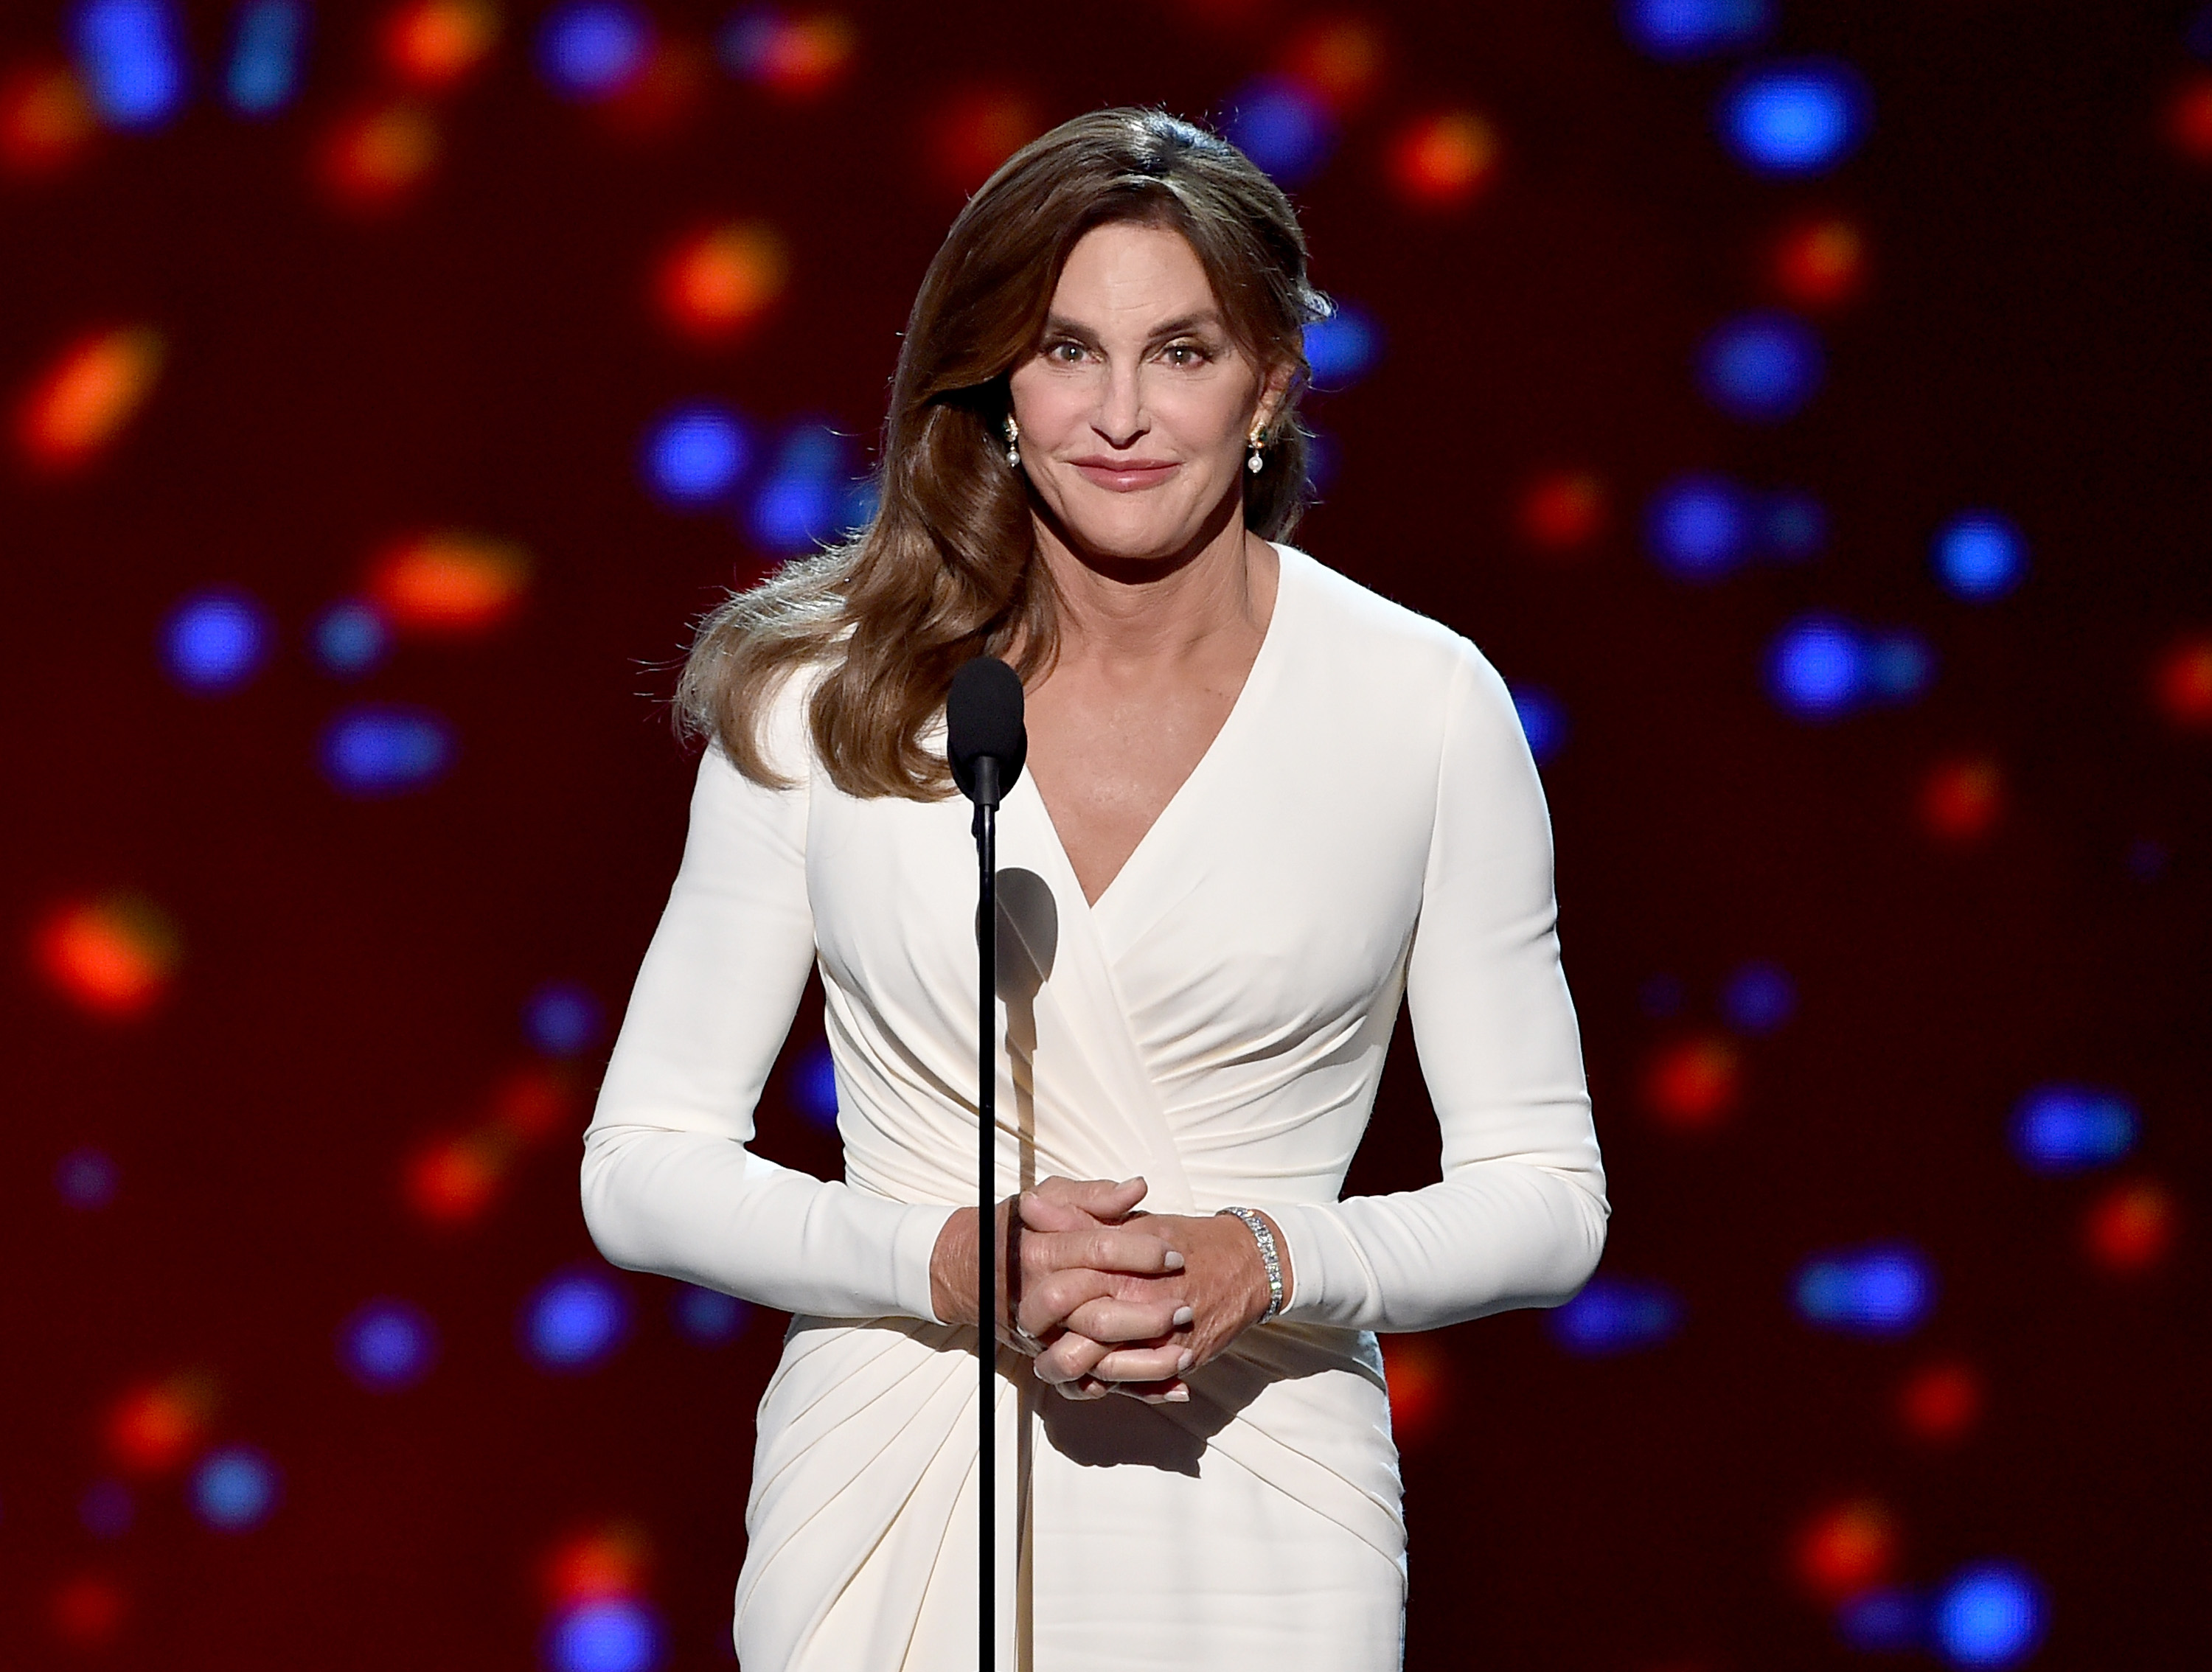 Caitlyn Jenner 'liberated' after gender reassignment surgery and admits she was 'tired of tucking it in all the time'